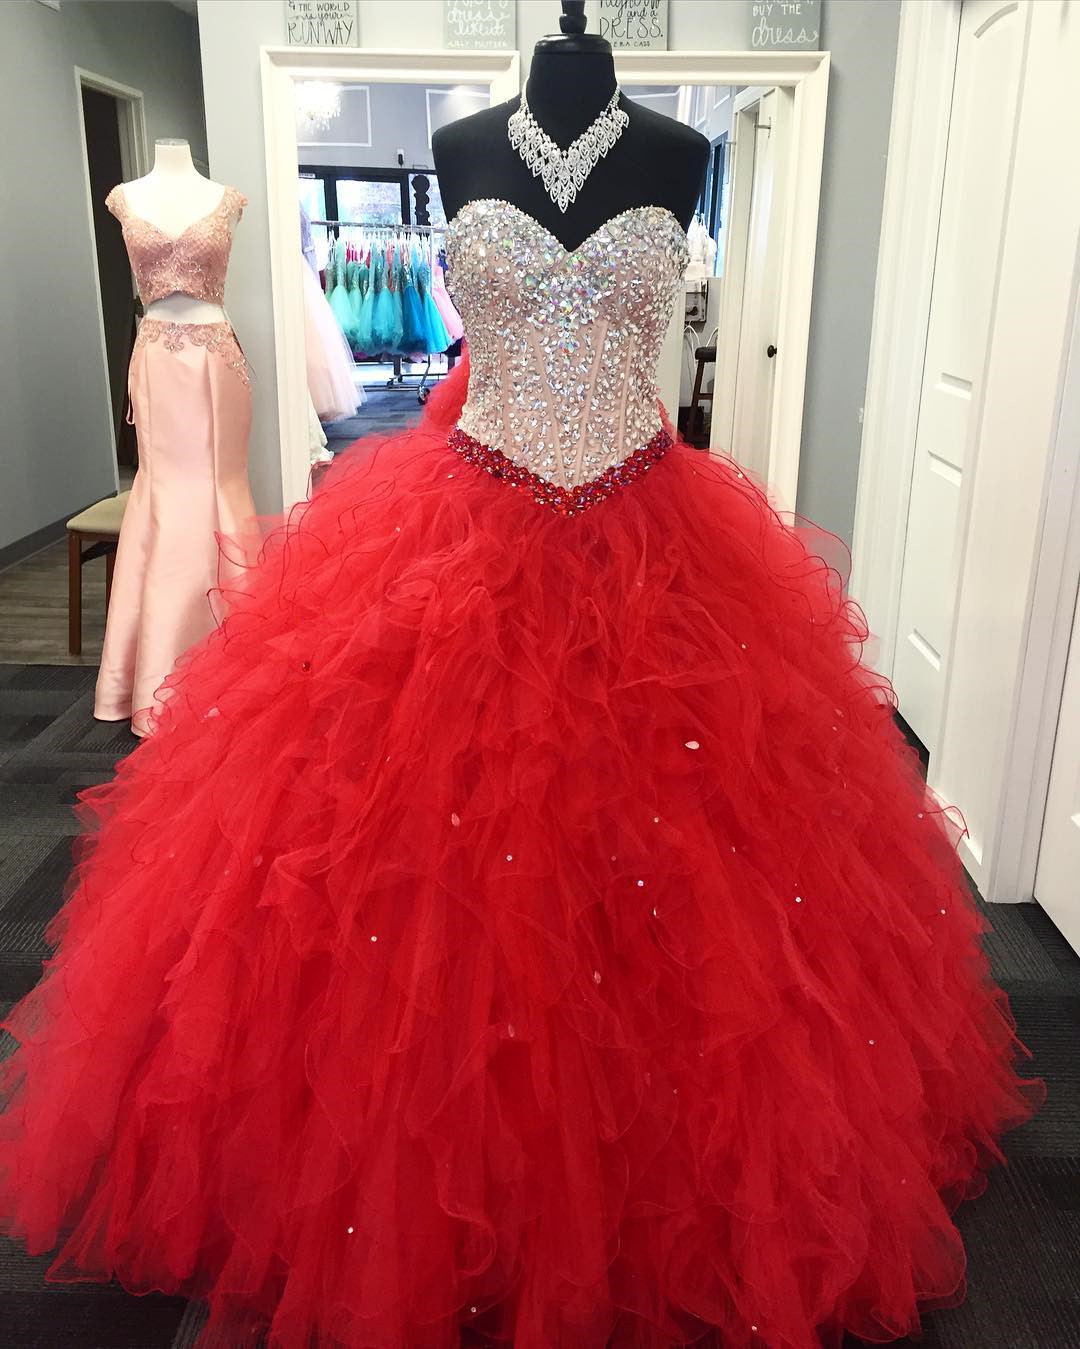 Red Quinceanera Dress Ball Gown Sweetheart Sweet 15 16 17 Party Gowns Quinceanera Dresses Teens Dancer Dress with Crystals Ruffles Quinceanera Dress Prom Dress